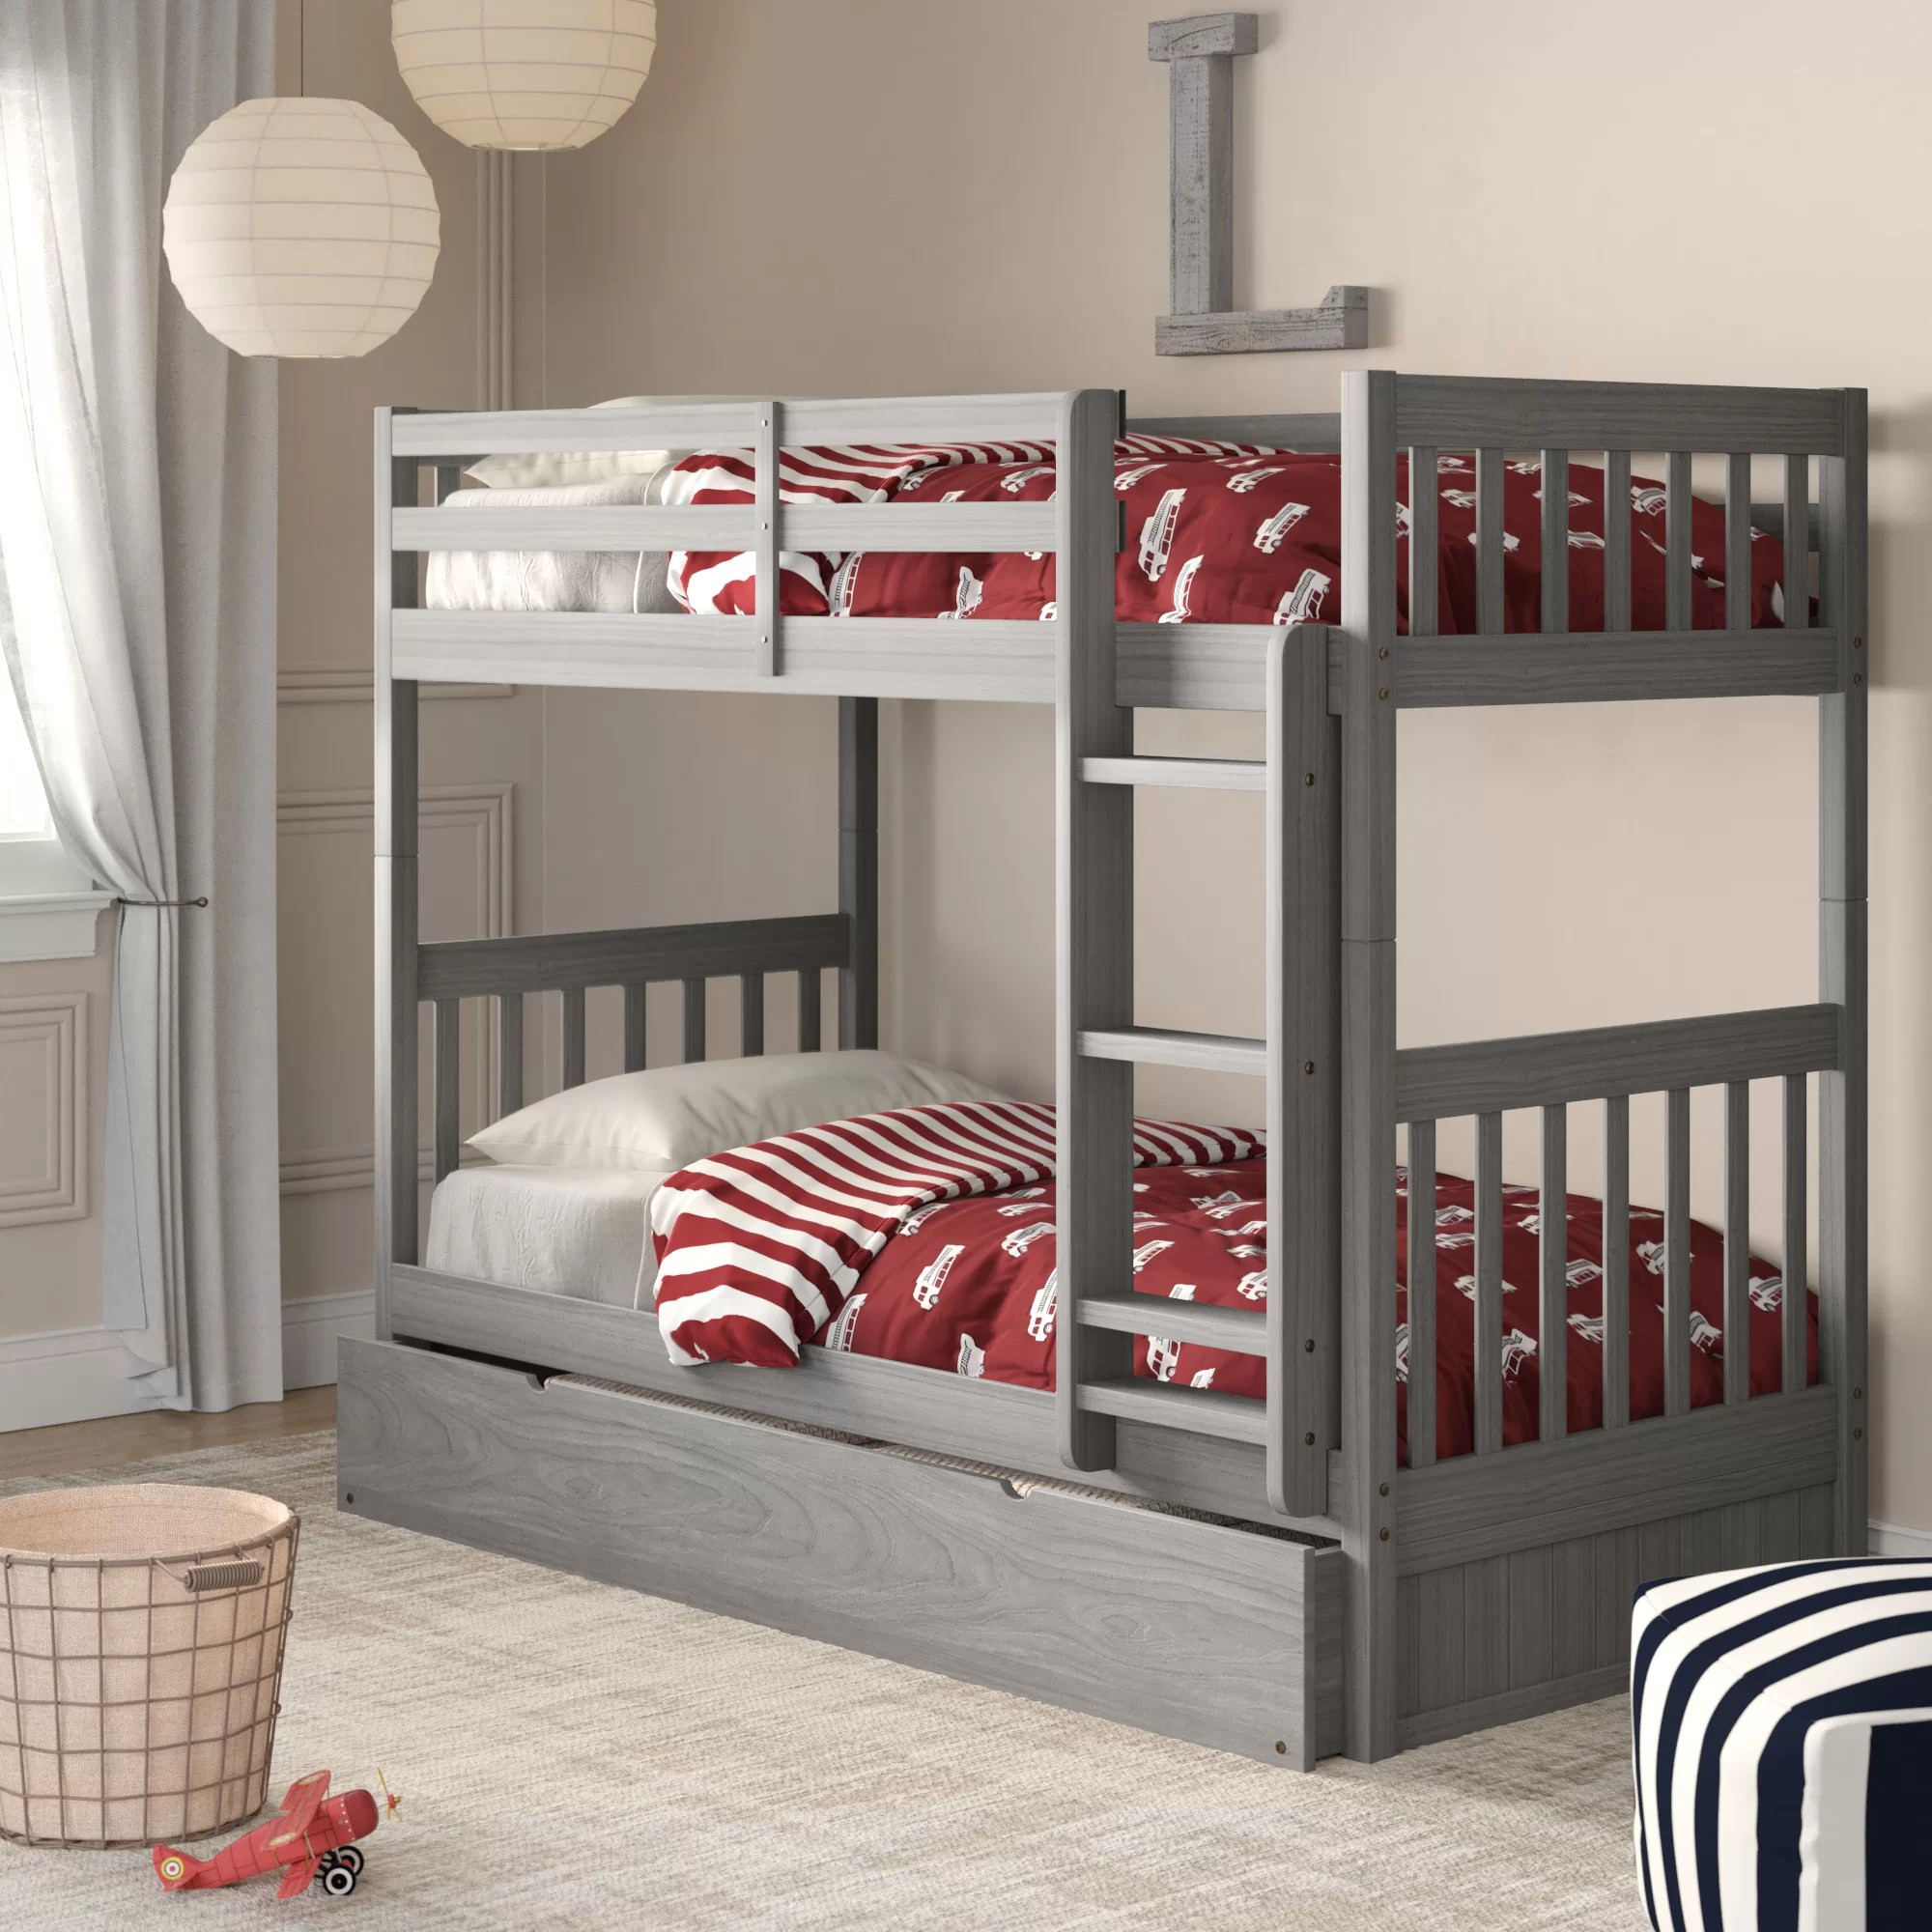 Snooze Bunk Beds Willett Twin Over Twin Bunk Bed With Trundle